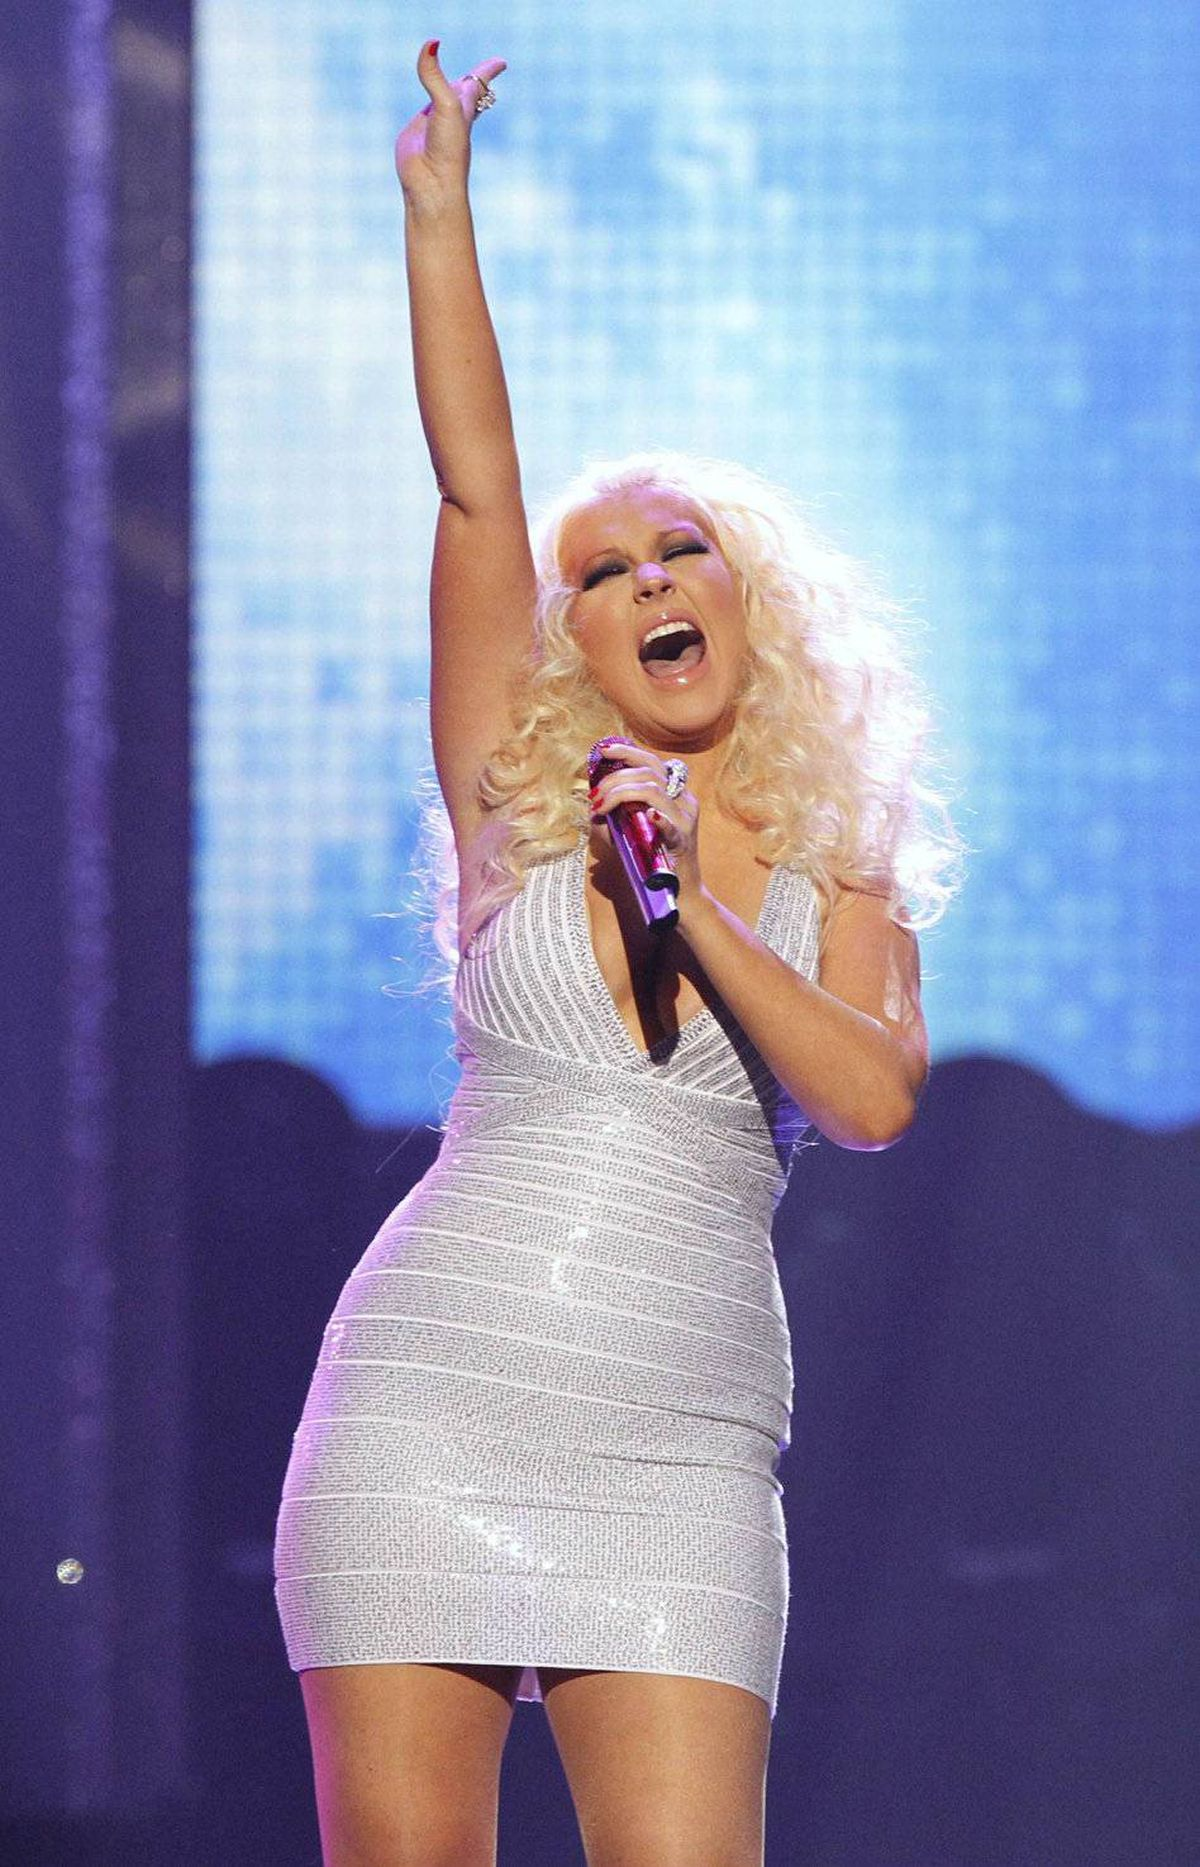 Singer Christina Aguilera performs with rock band Maroon 5 at the 2011 American Music Awards in Los Angeles November 20, 2011.